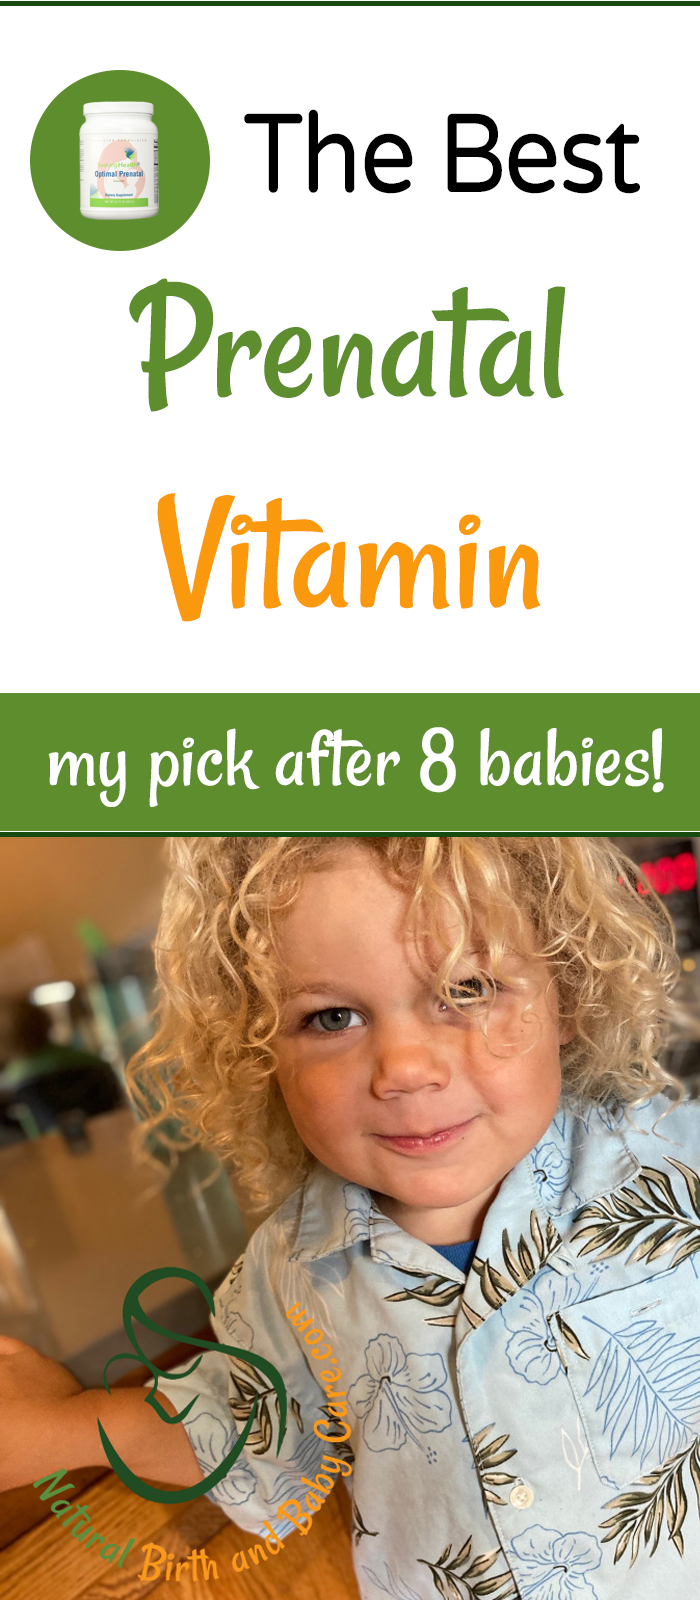 Composite image of my healthy toddler and my top prenatal vitamin choice.